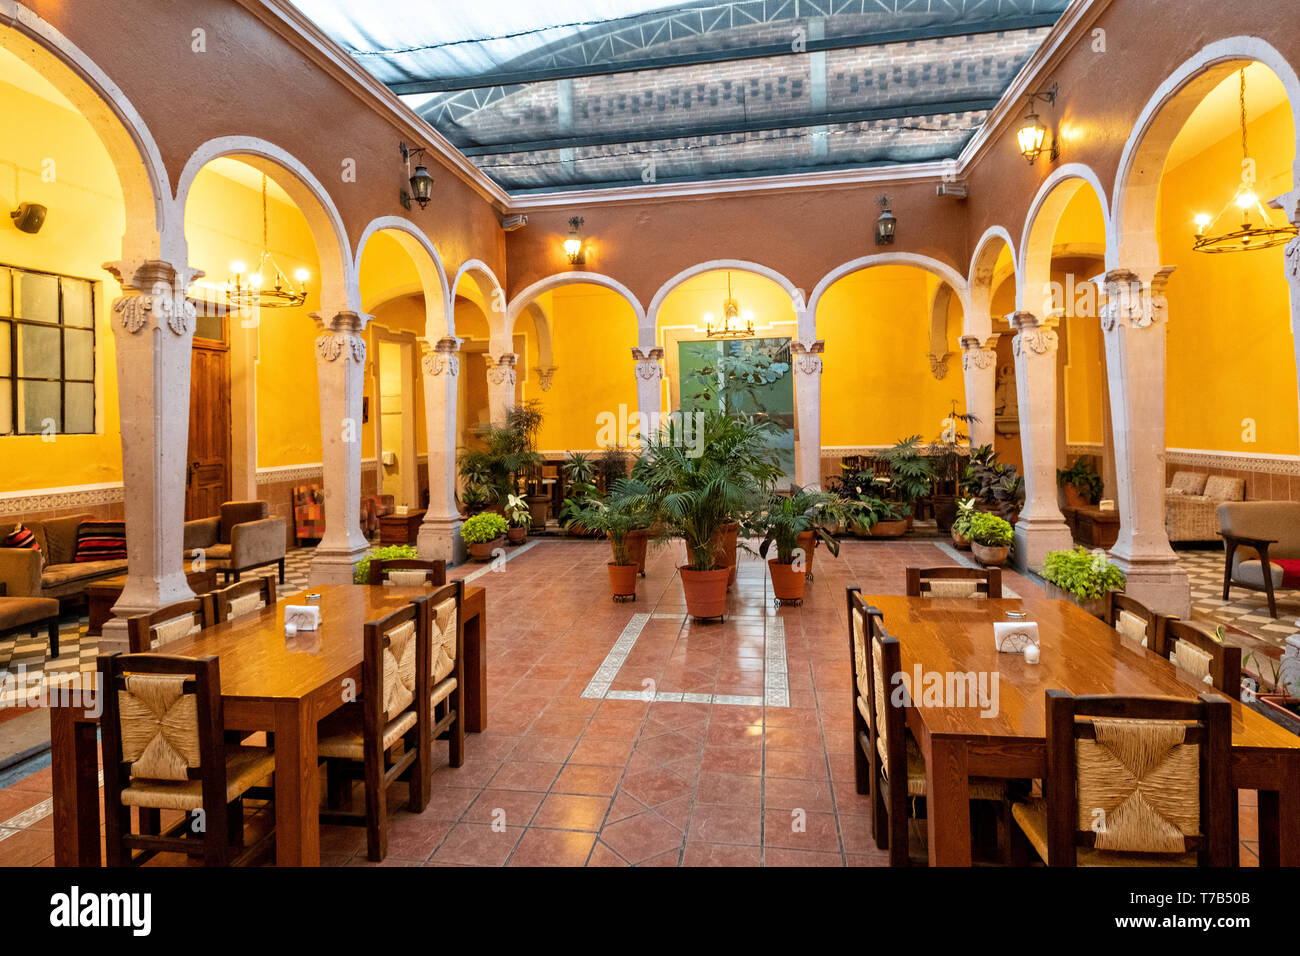 The Cafe La Academia coffee shop and restaurant housed in an old colonial building in Jalostotitlan, Jalisco State, Mexico. - Stock Image